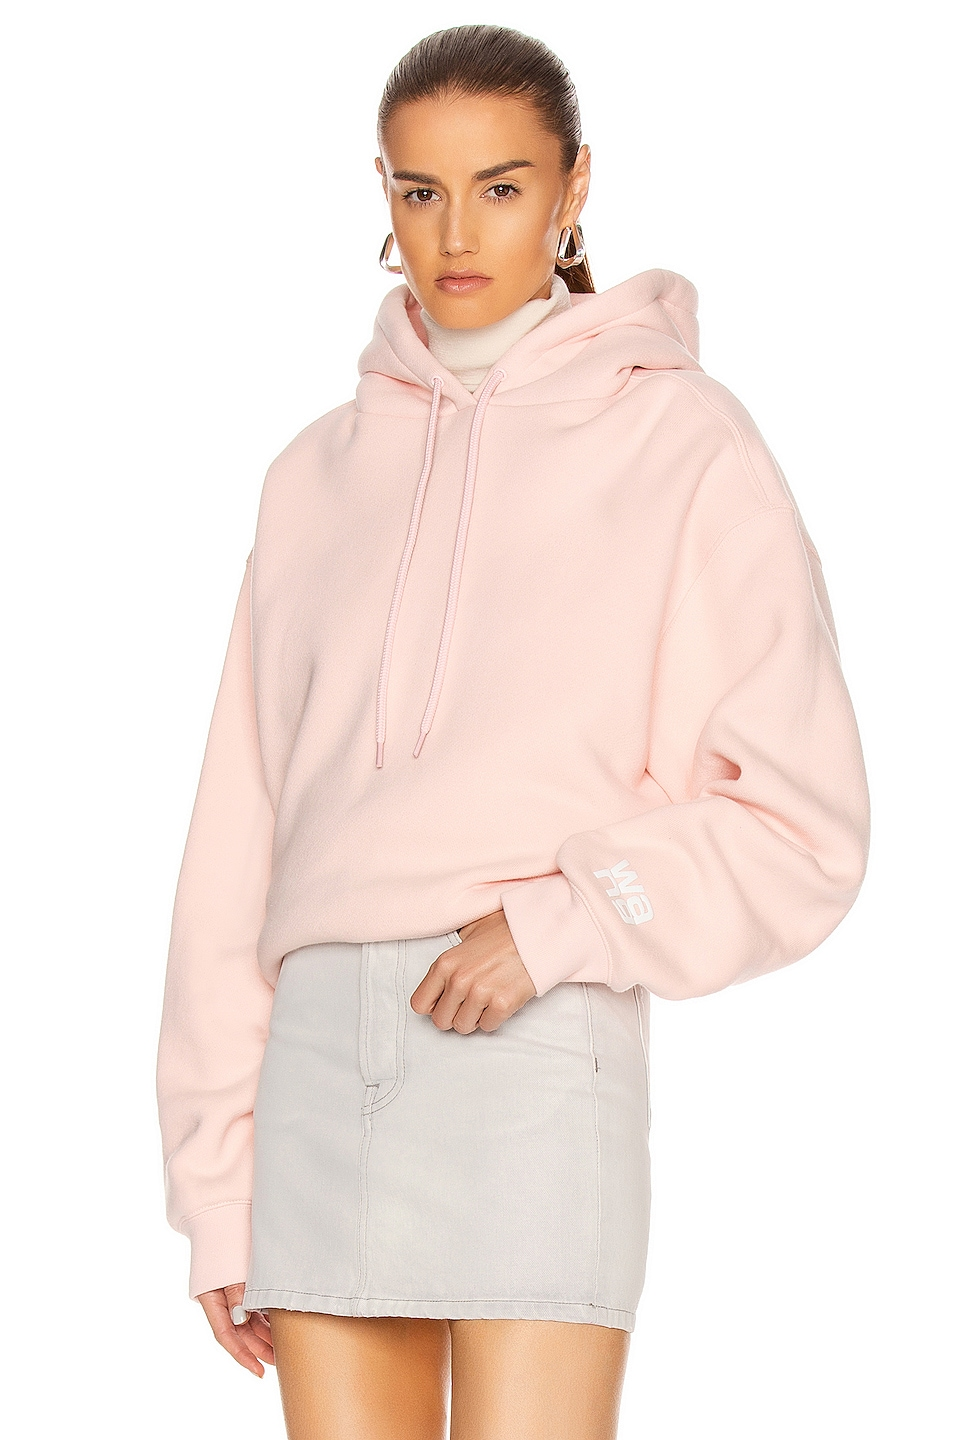 Image 1 of T by Alexander Wang Puff Paint Bubble Hoodie in Light Melon